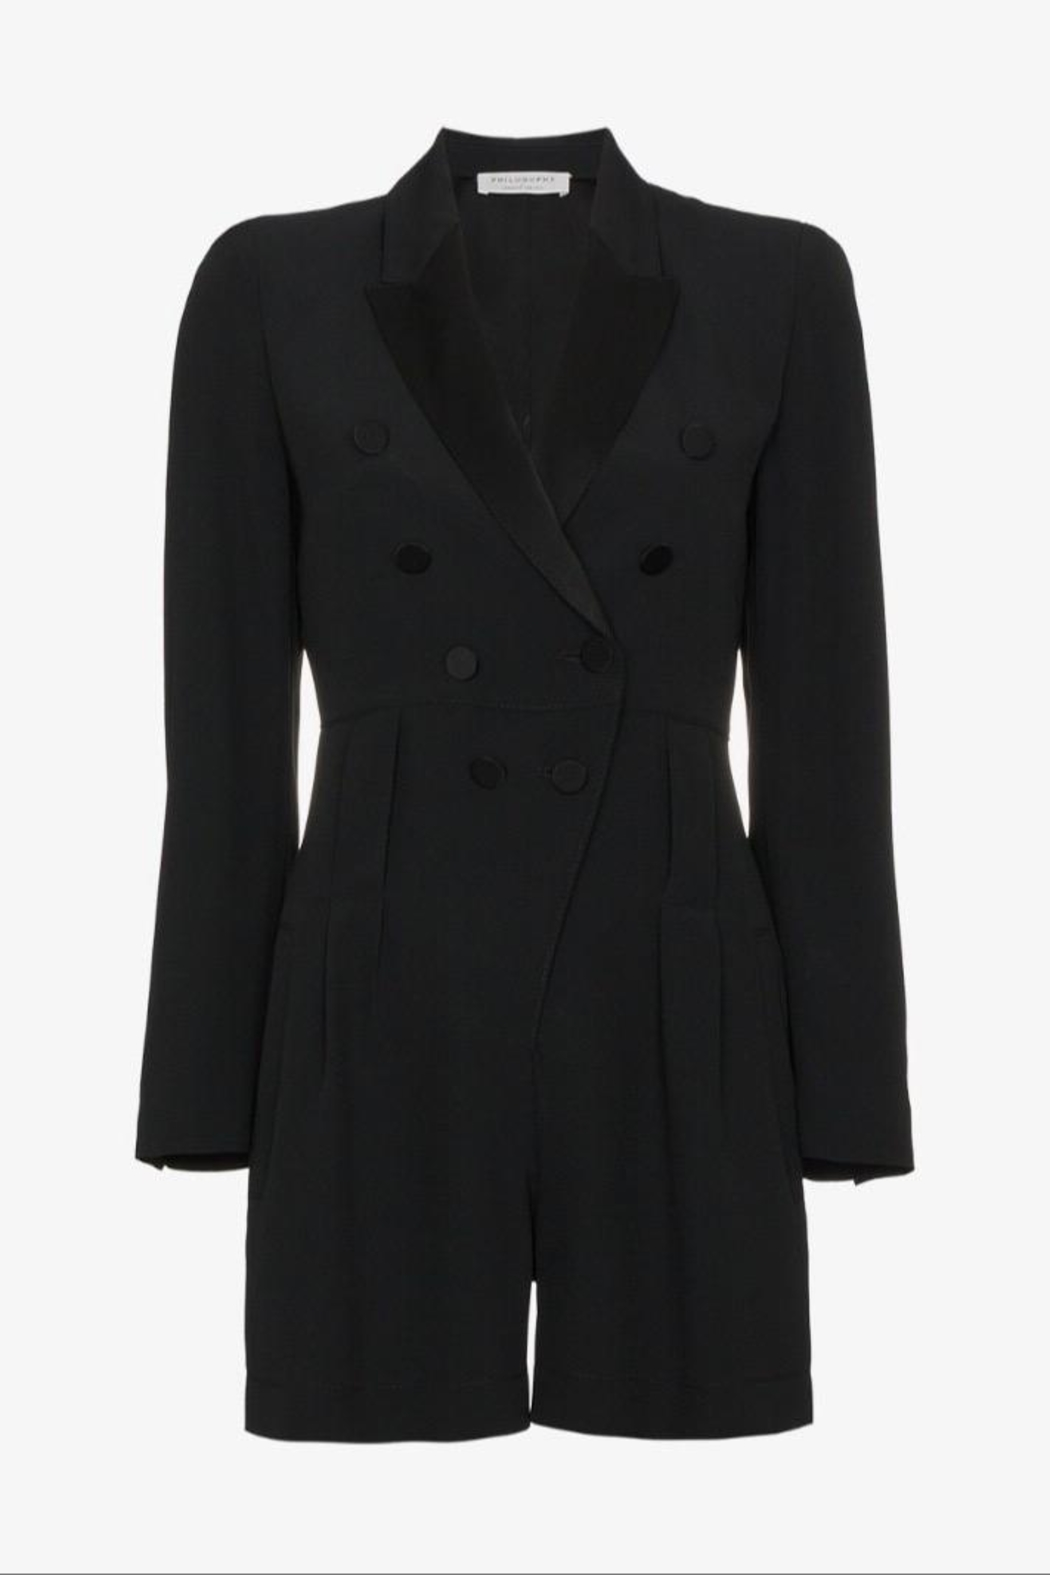 Philosophy di Lorenzo Serafini Black Tuxedo Playsuit - Main Image